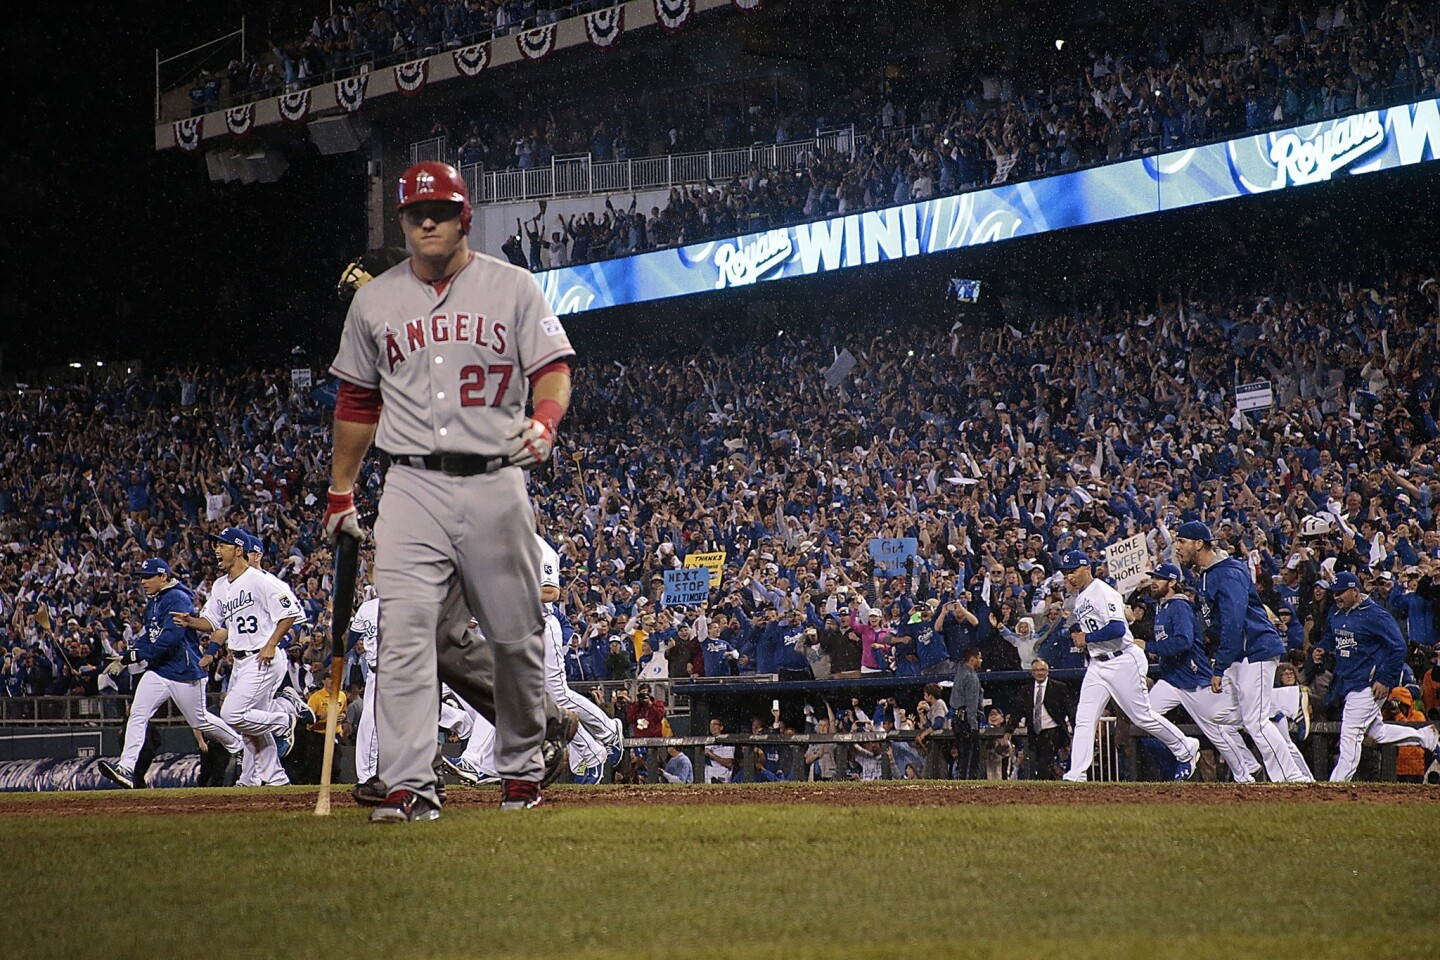 Angels center fielder Mike Trout walks to the dugout as the Kansas City Royals celebrate their series-clinch victory in Game 3 of the ALDS on Sunday.